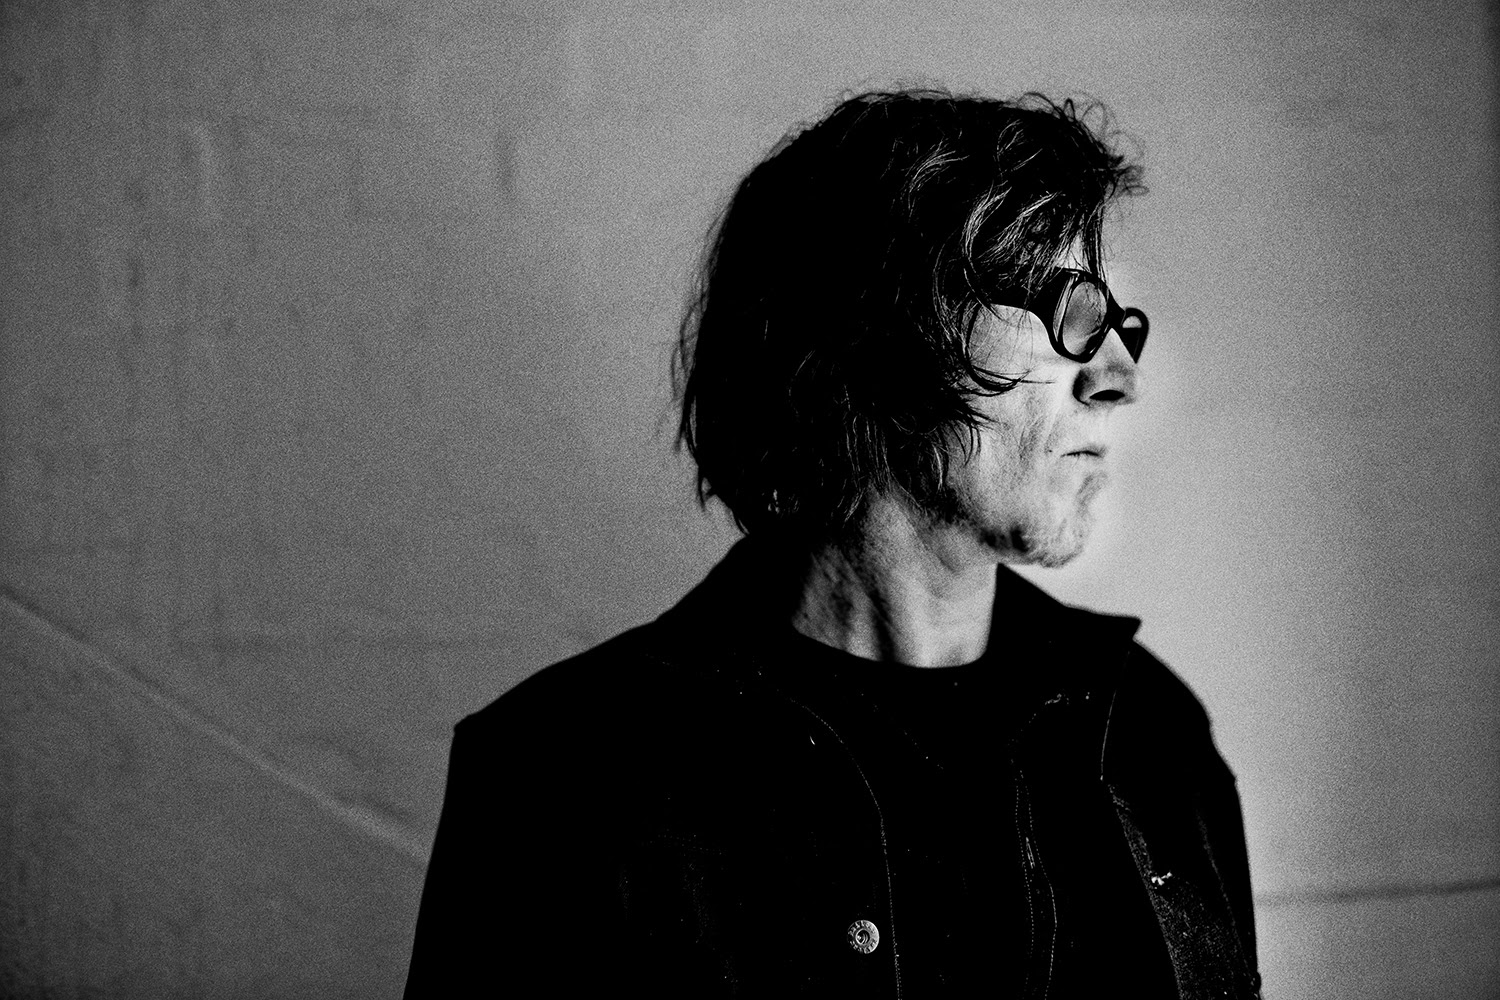 Mark Lanegan announces spring tour dates with Duke Garwood.